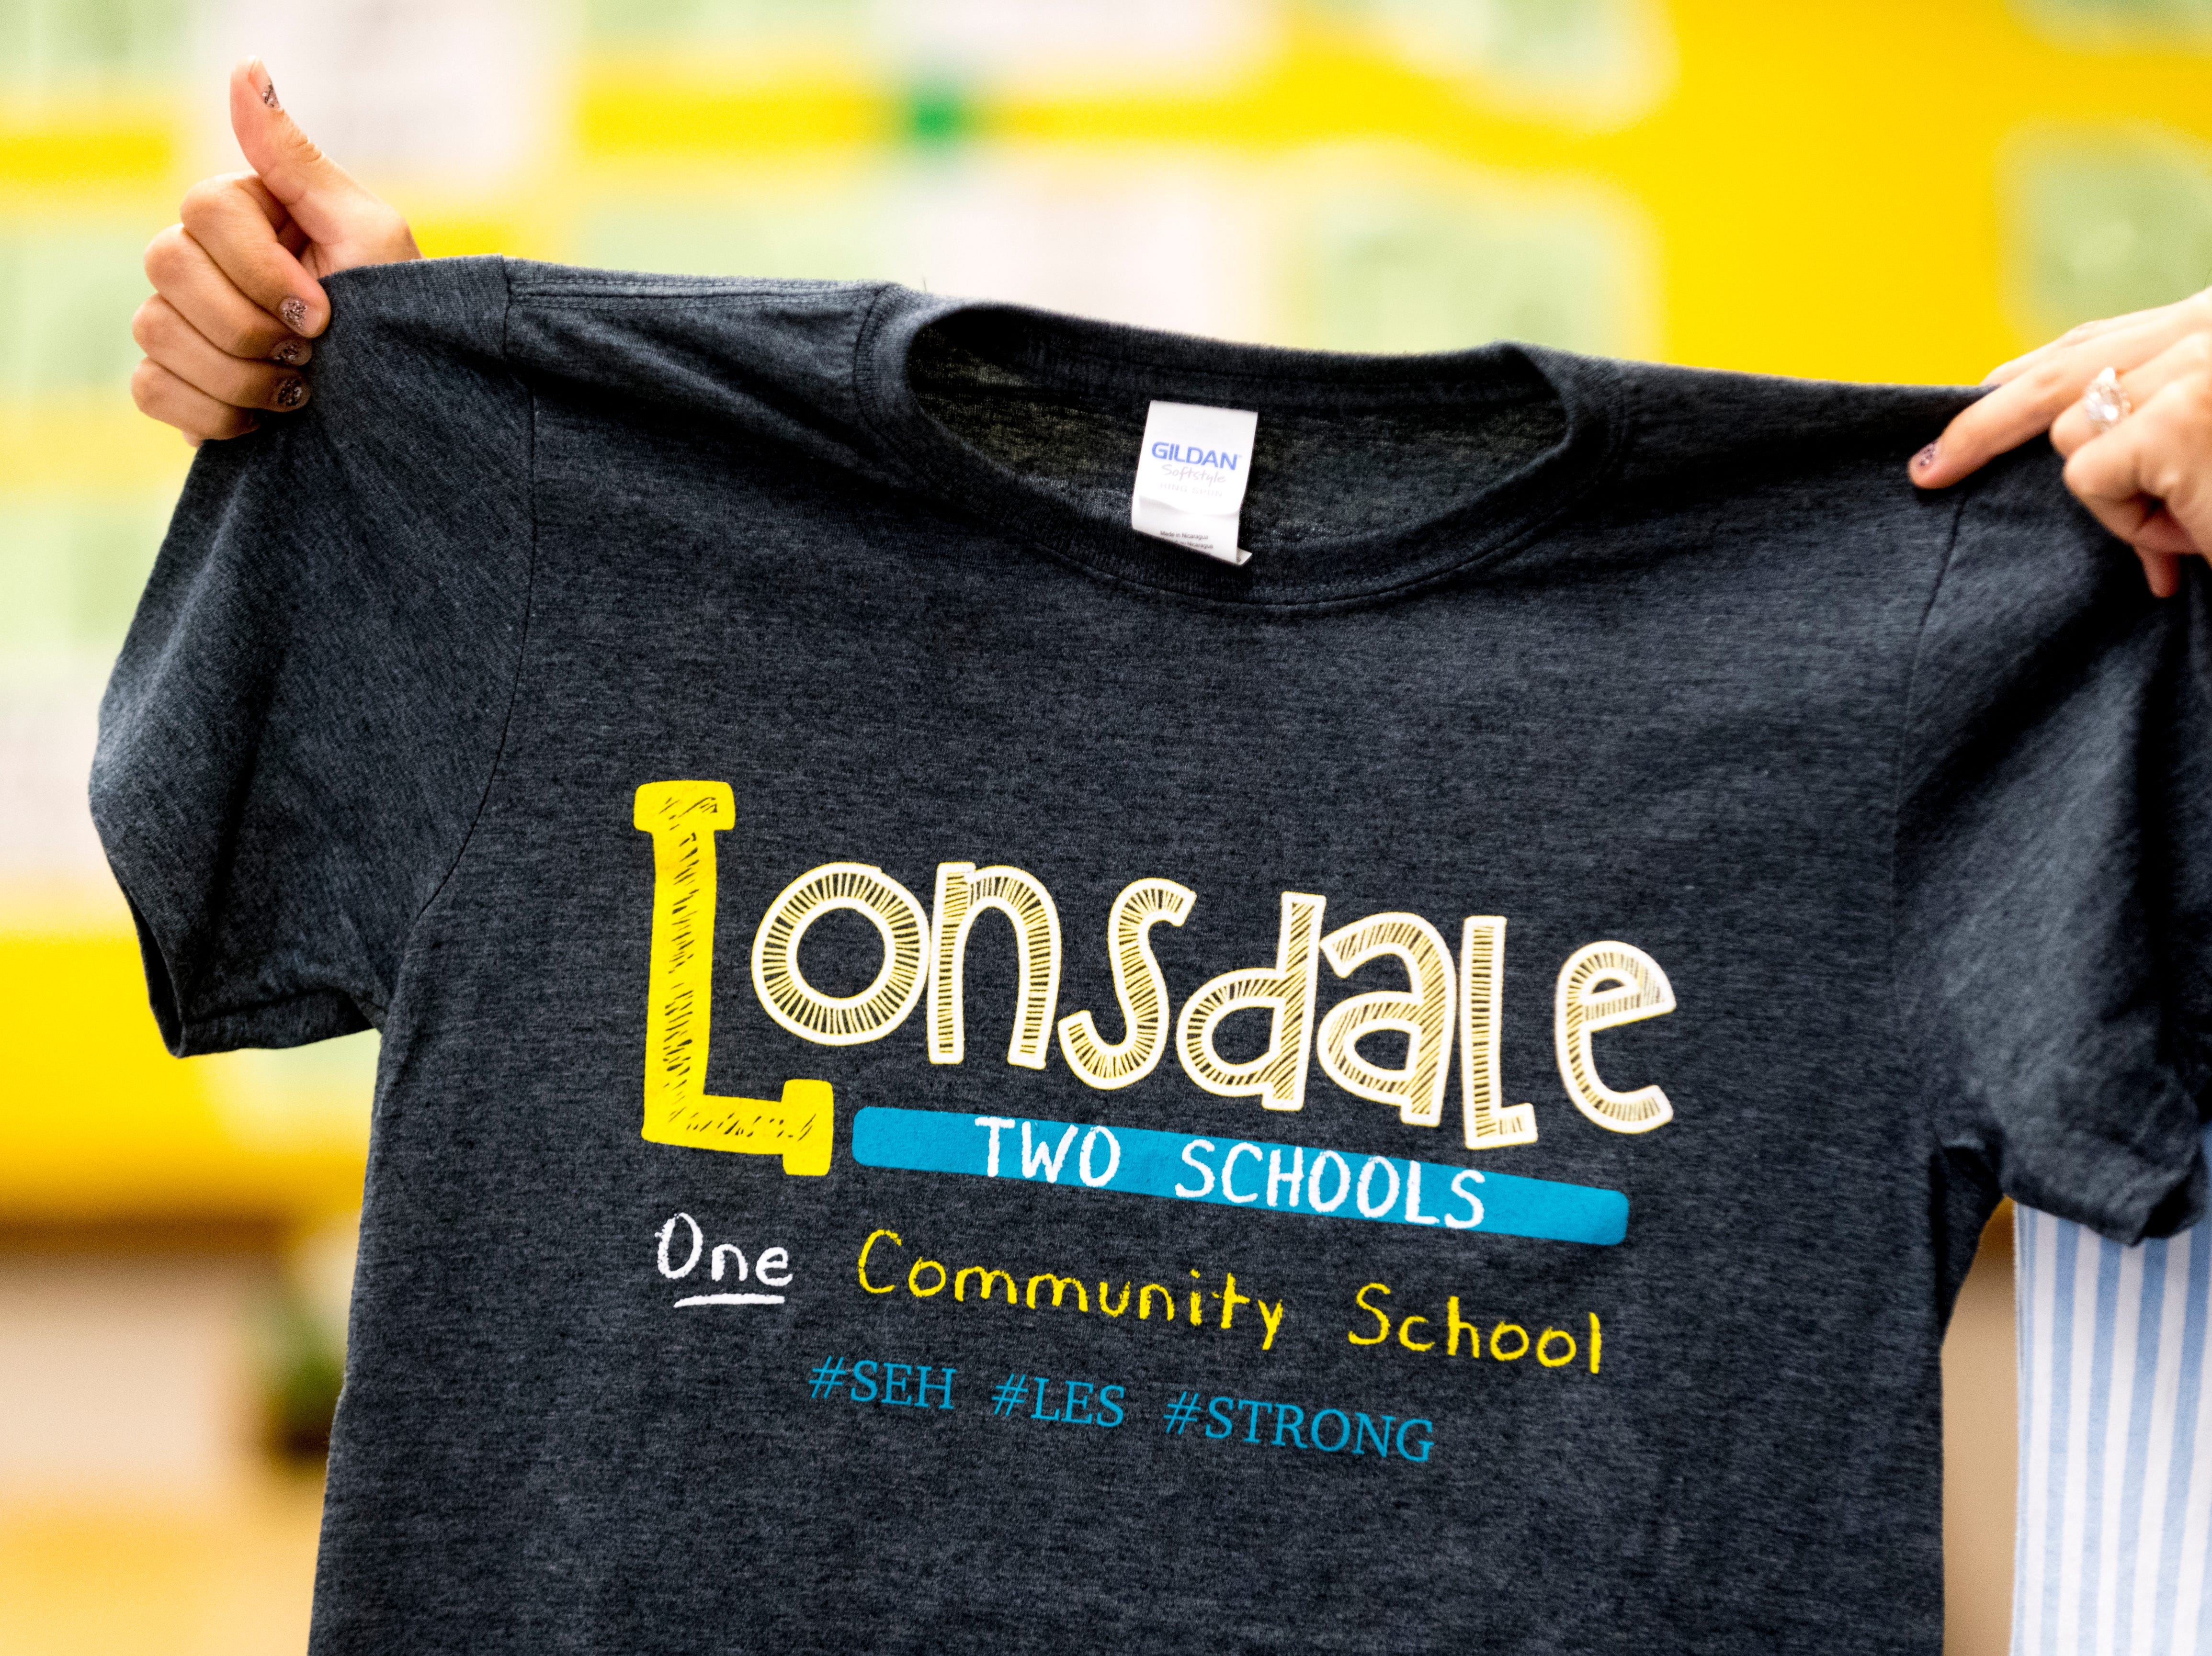 Kindergarten teacher Patricia Galicki's holds a Lonsdale t-shirt at Sam E. Hill Primary School in the Lonsdale community in Knoxville, Tennessee on Friday, August 3, 2018. The school has newly transitioned from a preschool into a primary school.